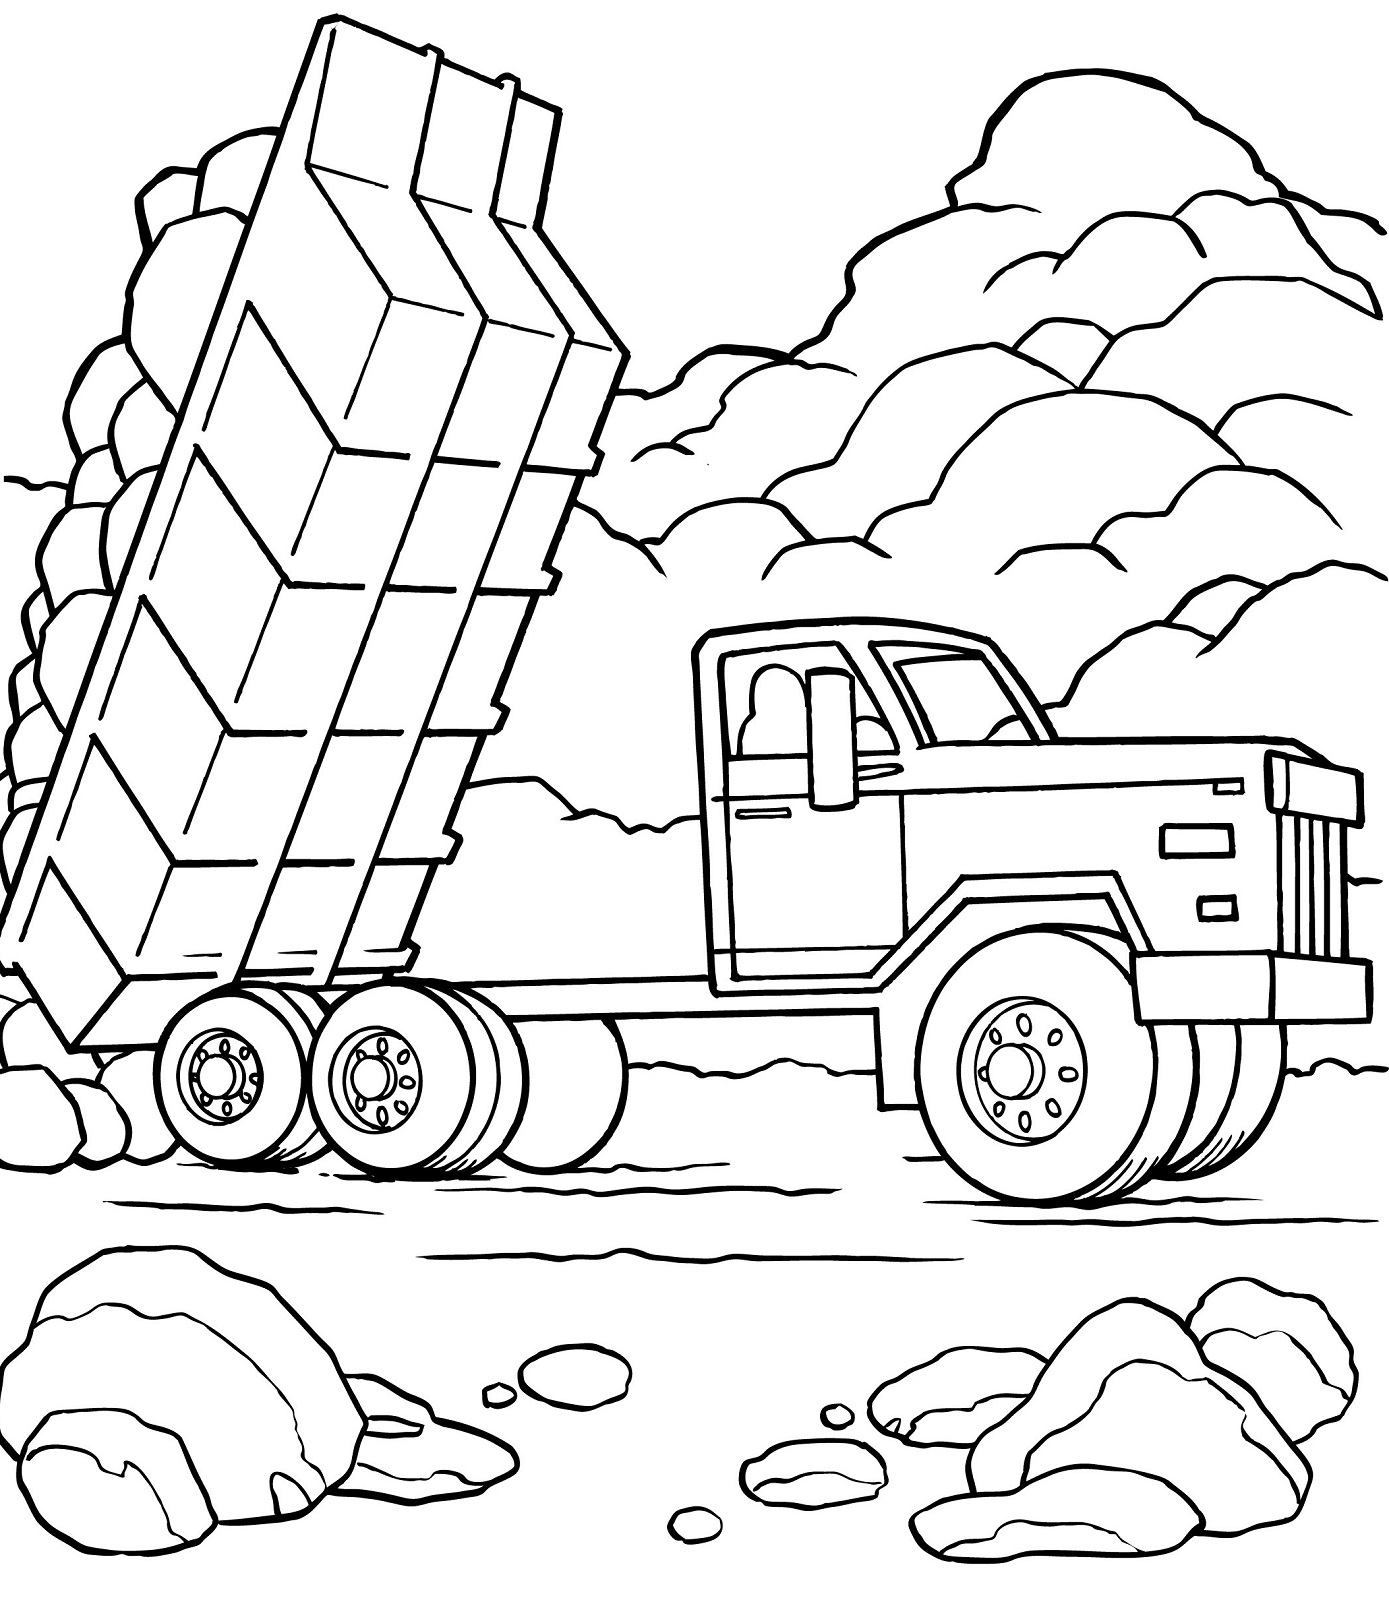 dump-truck-pictures-for-kids-large